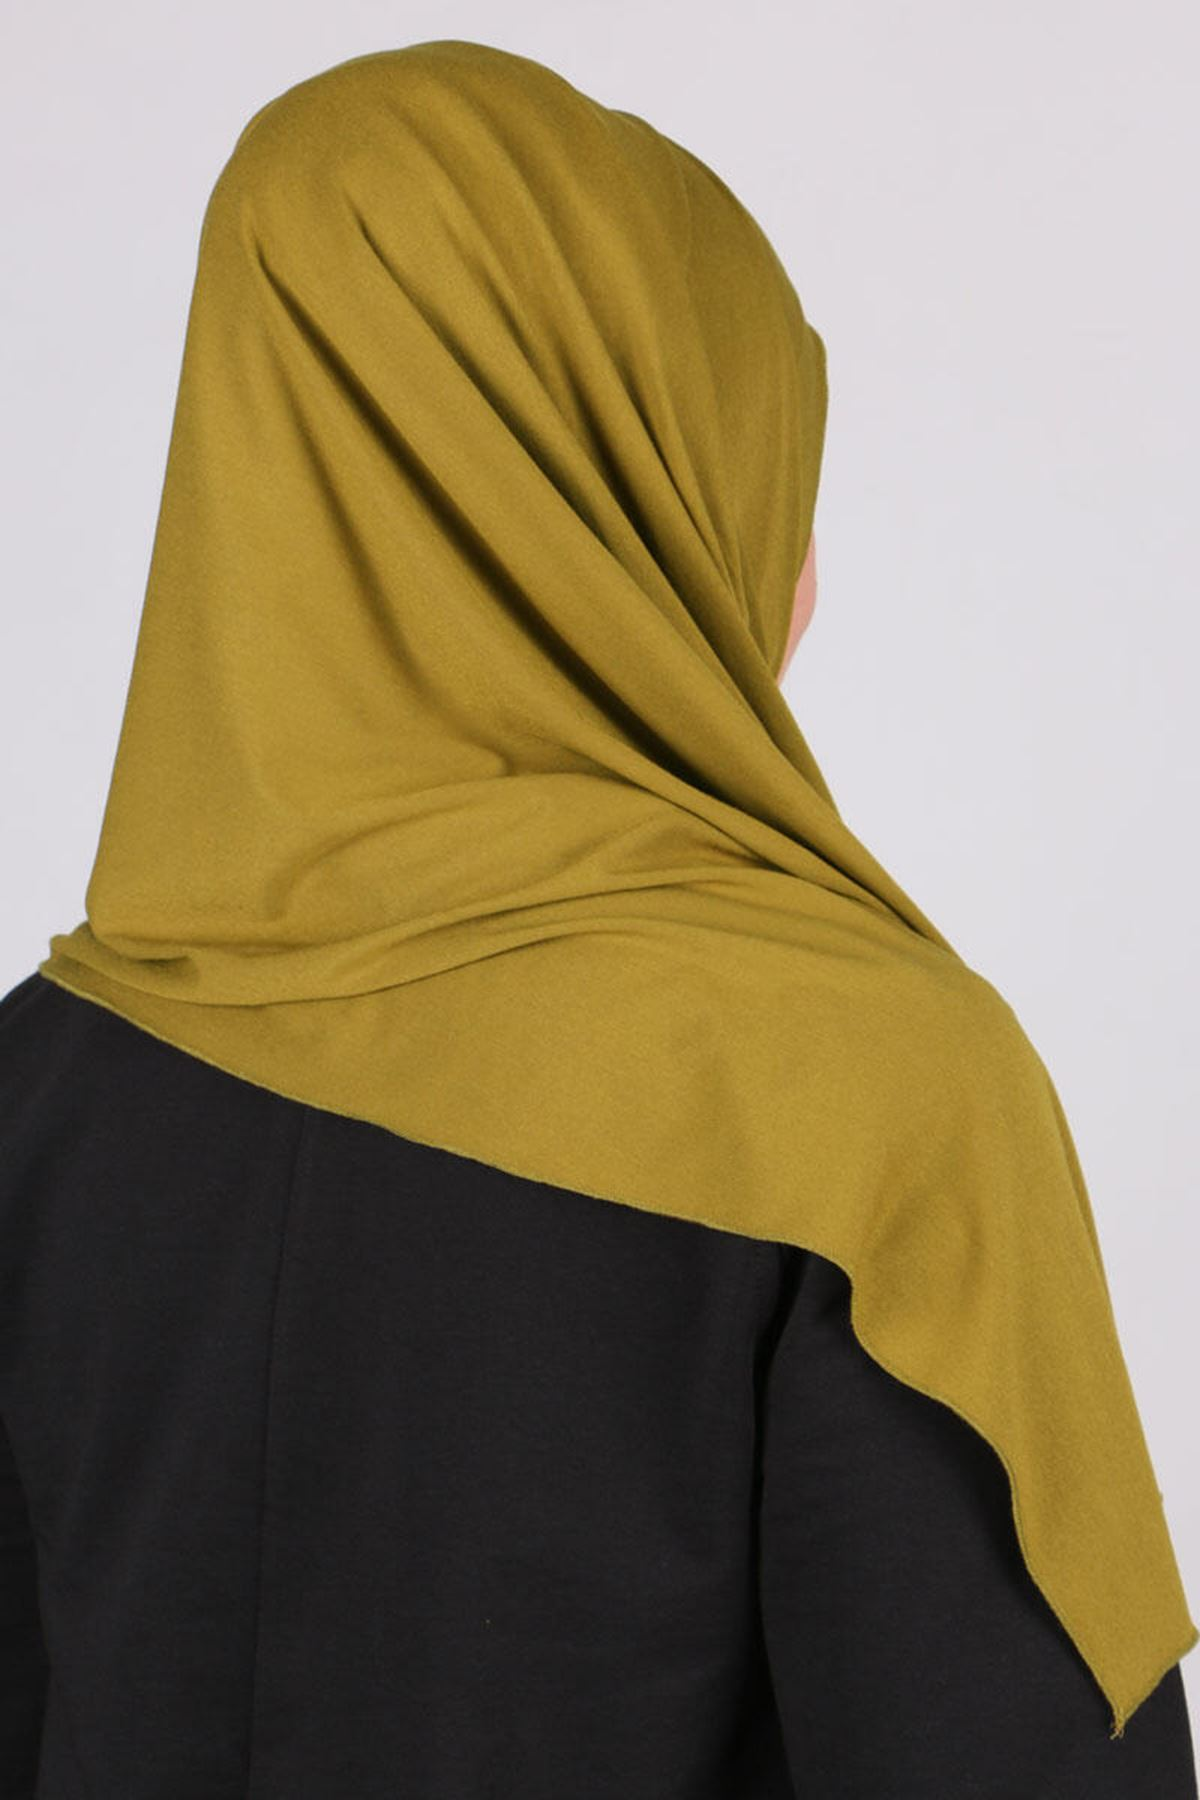 503 Combed Cotton Shwal - Olive Green